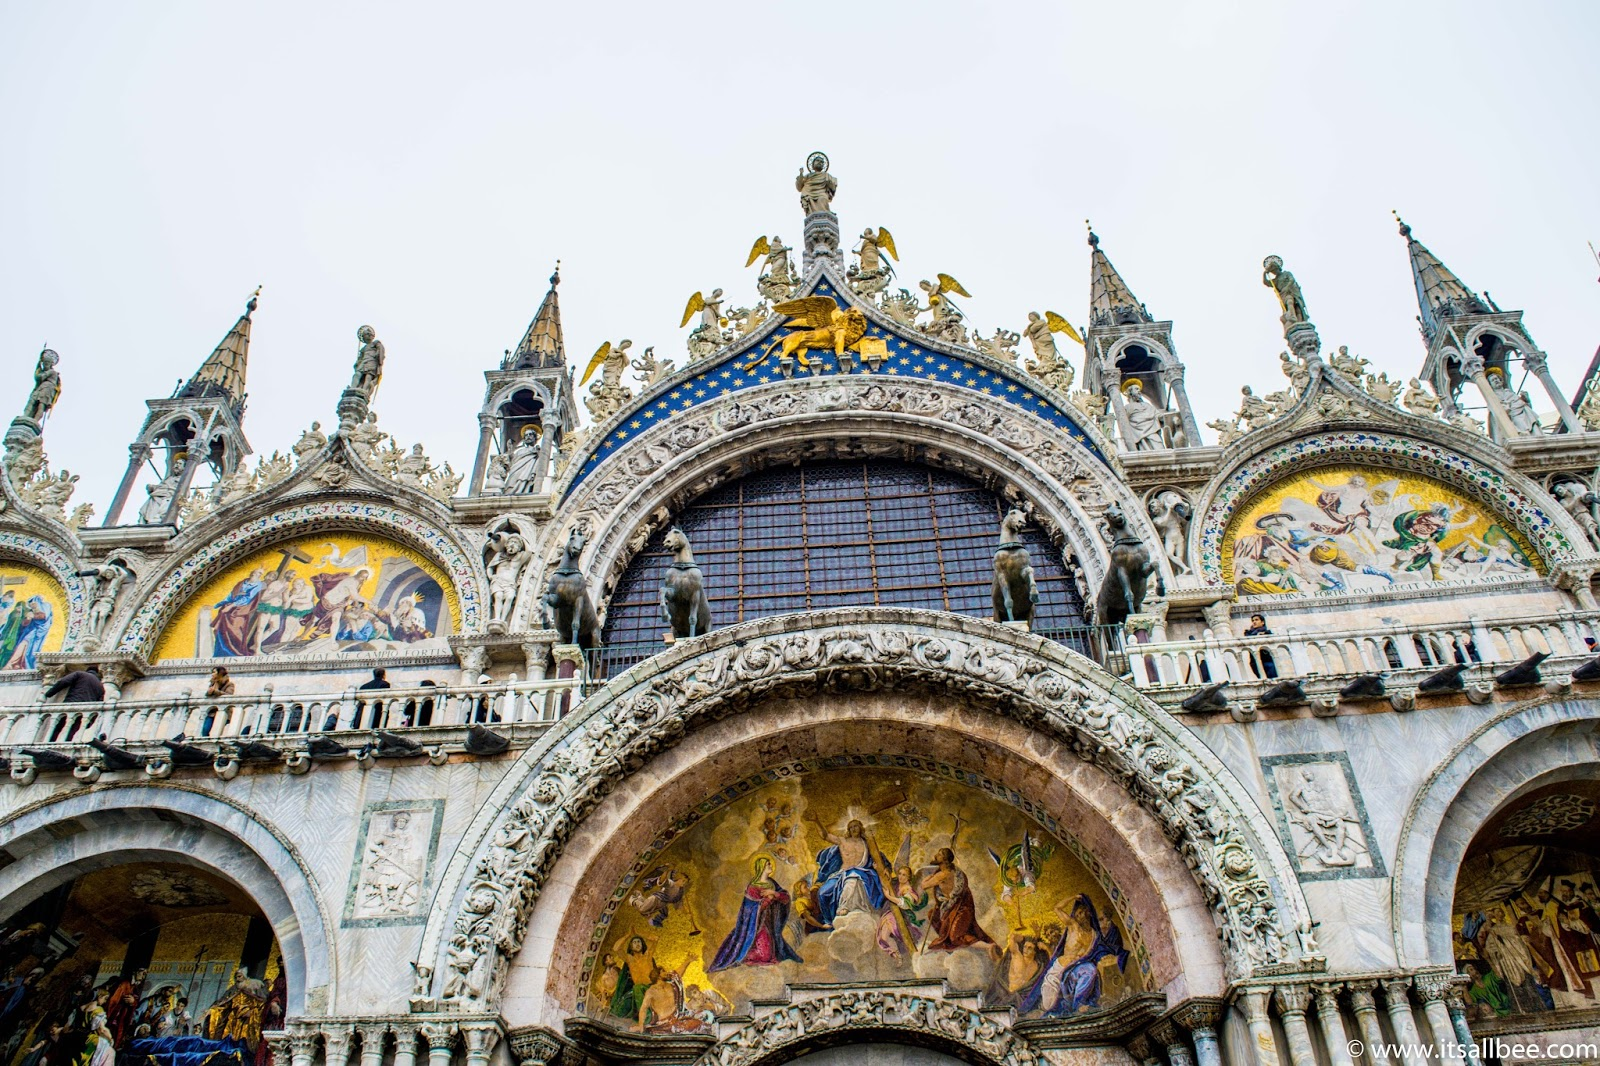 The Best Venice Photography Spots | Venice Church and Bascilica